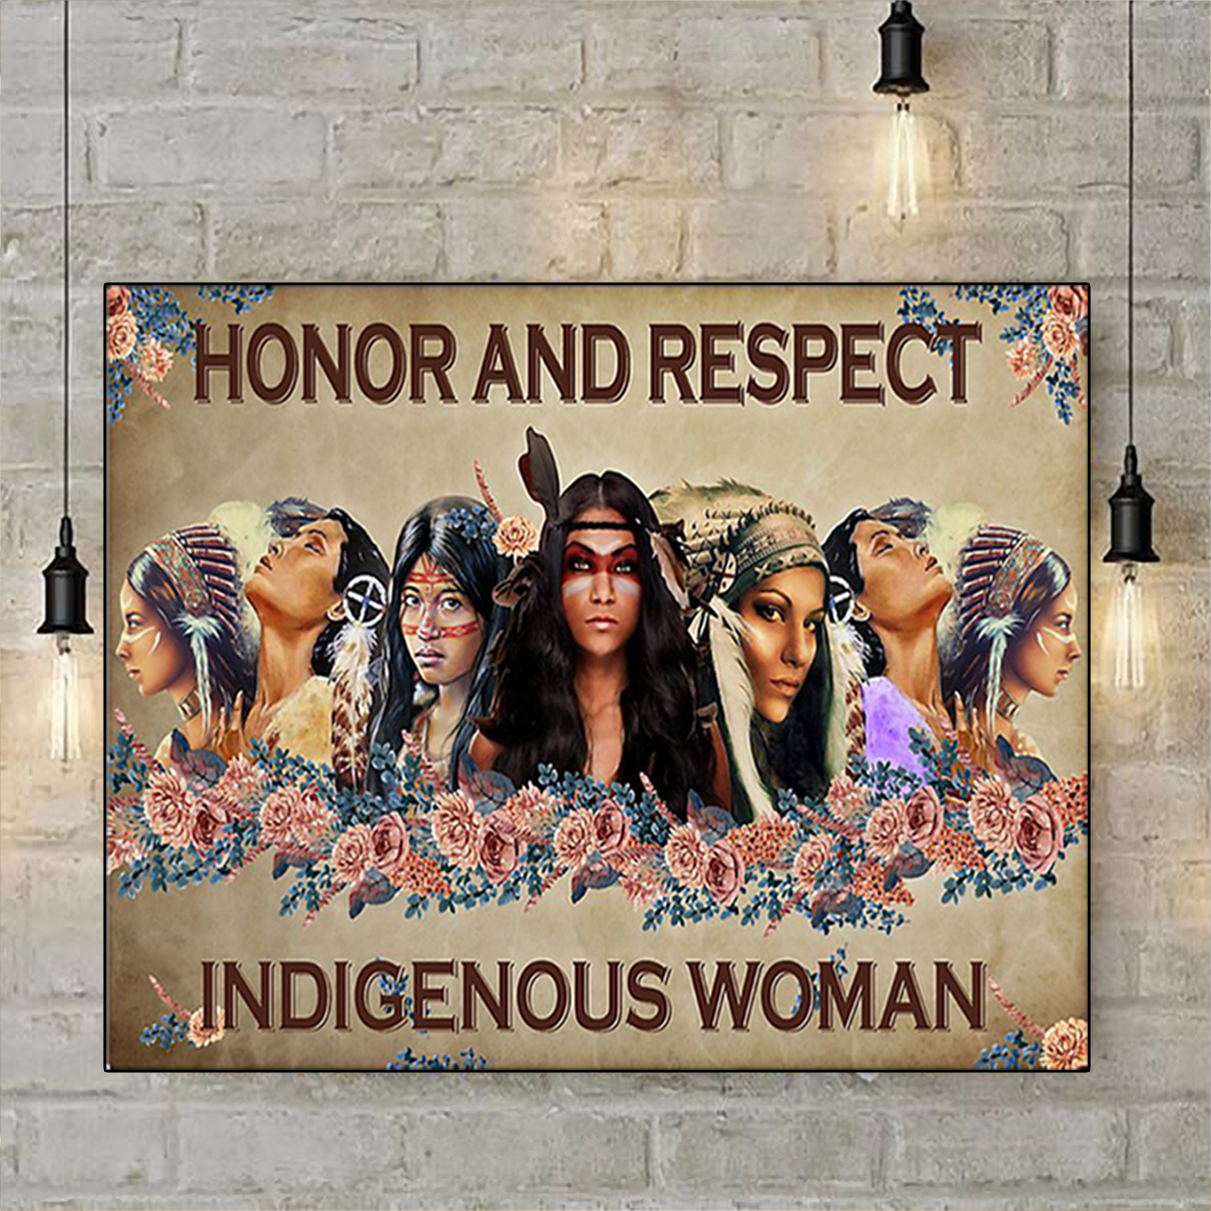 Honor and respect indigenous woman poster A1